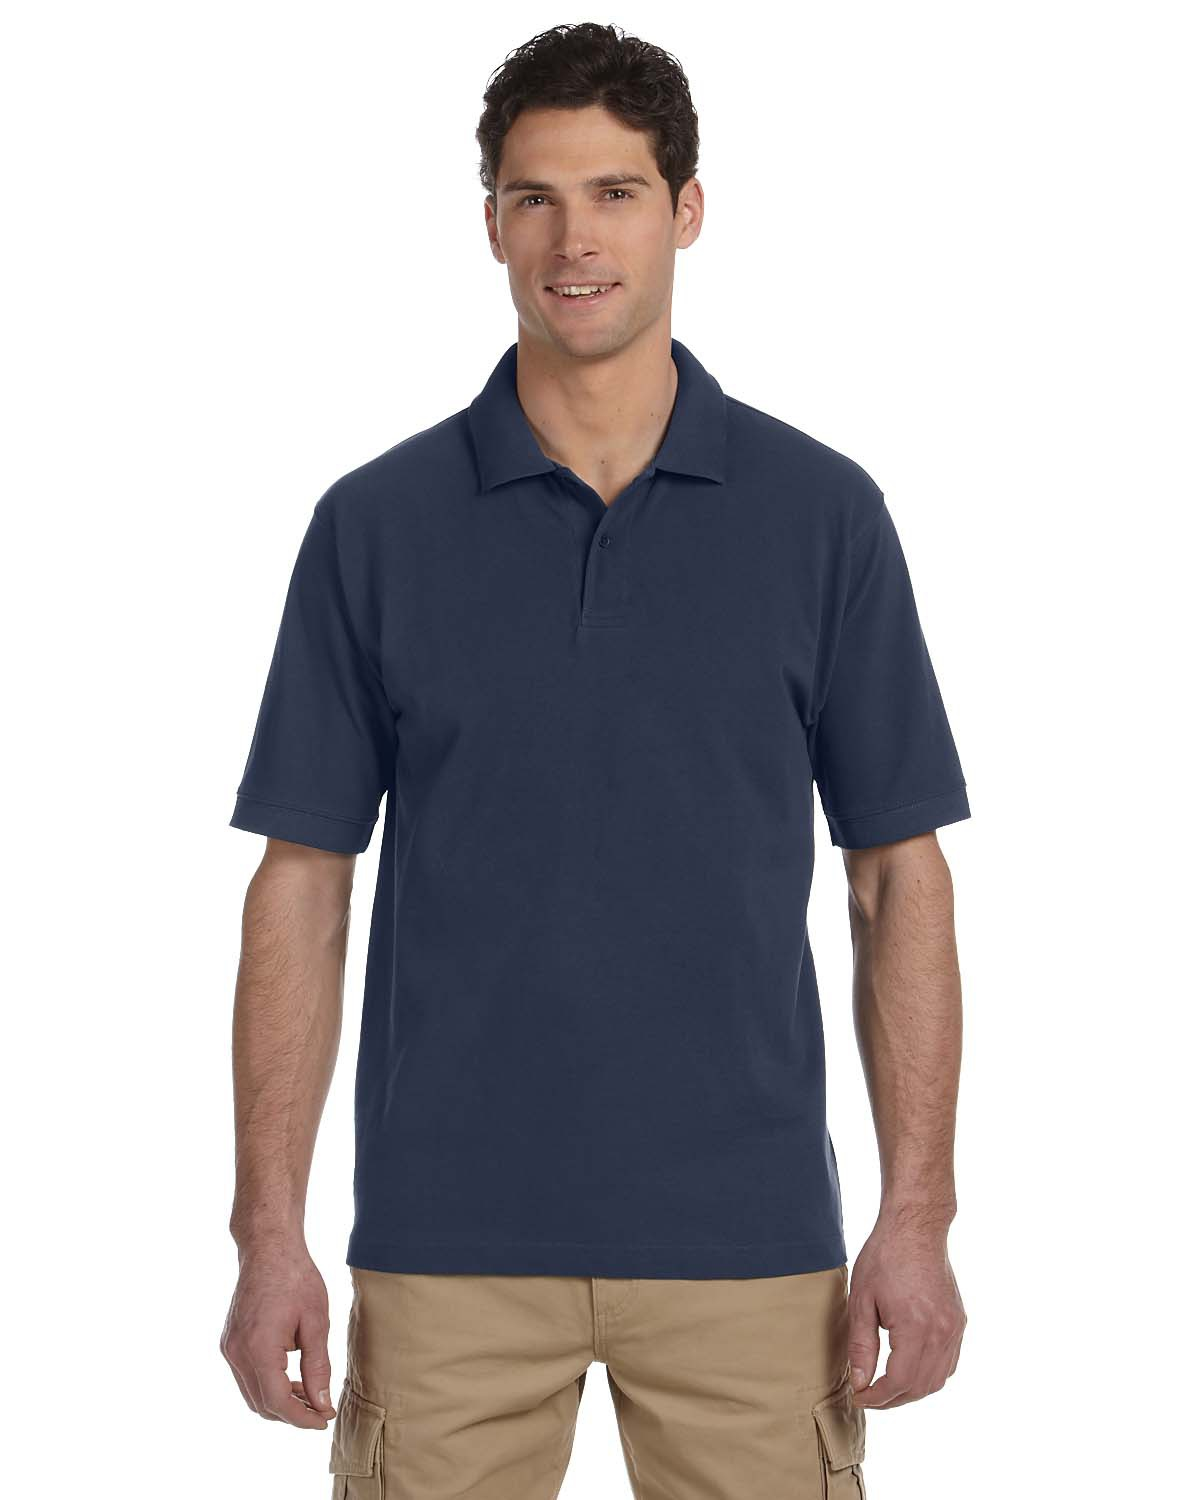 Men's 6.5 oz. 100% Organic Cotton Pique Polo